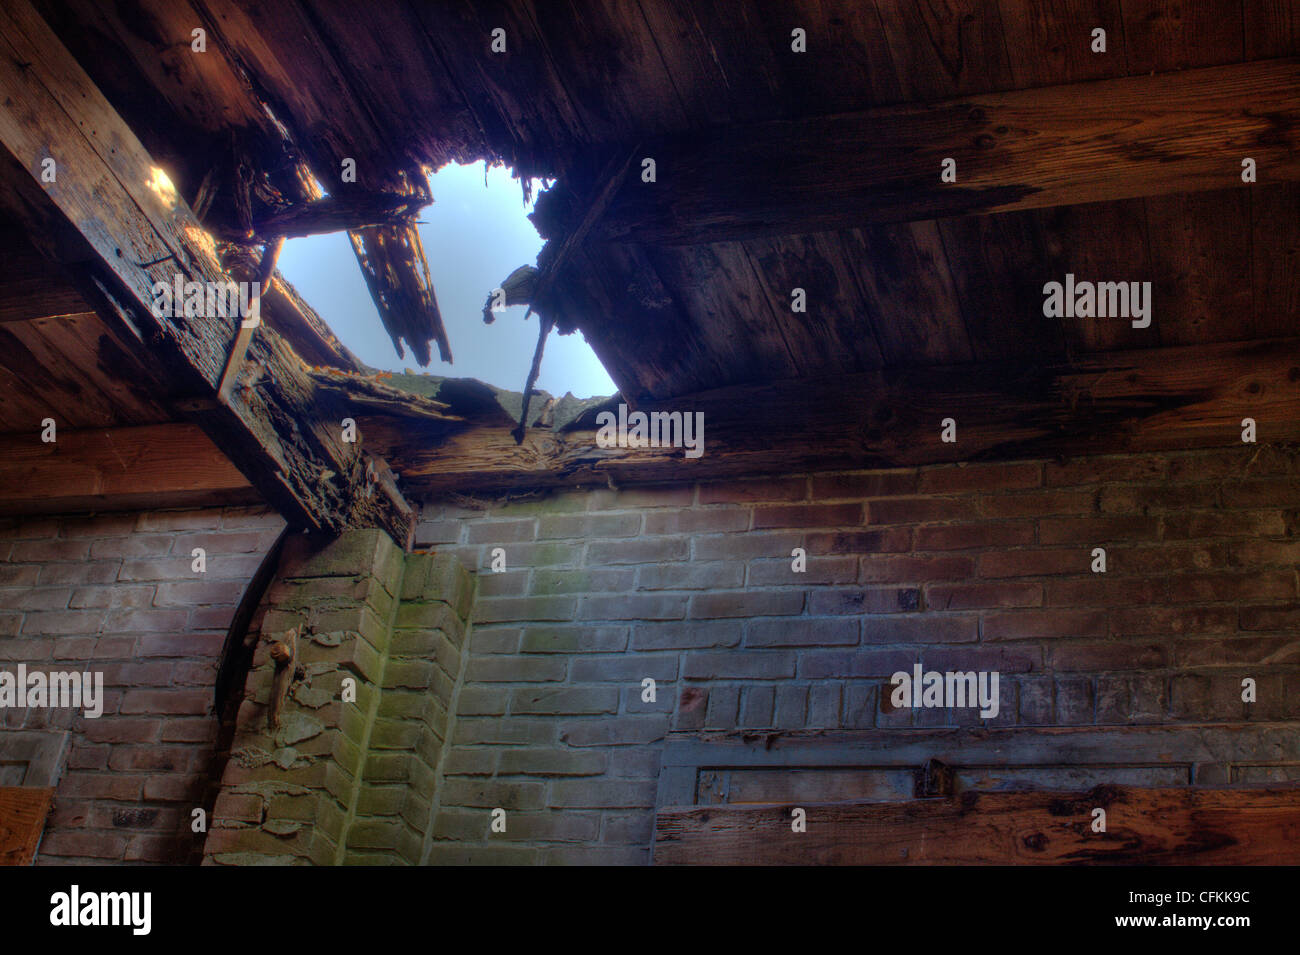 Hole in the roof of an old barn - Stock Image